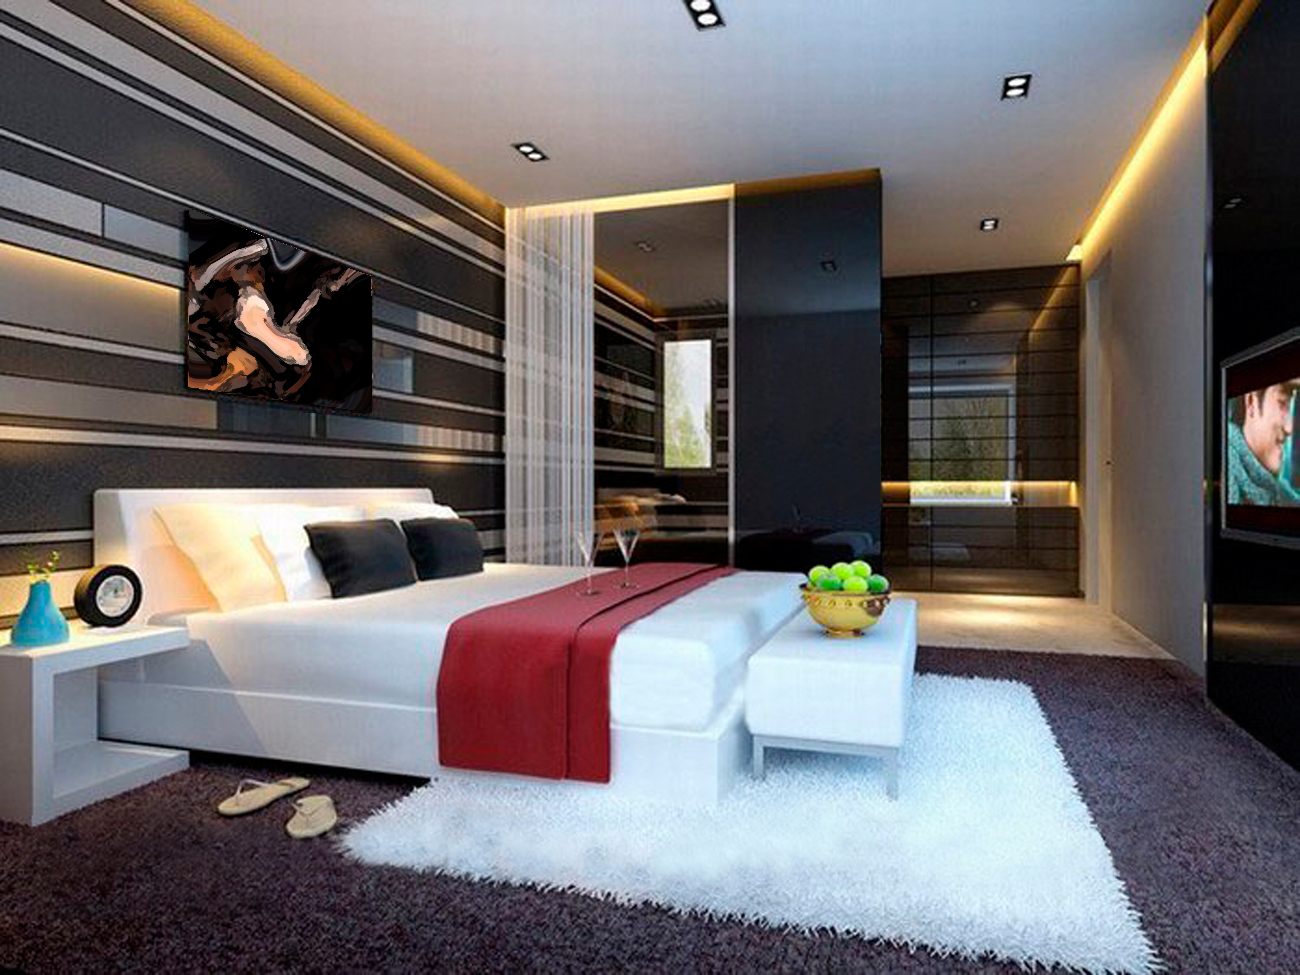 3d design bedroom 3d high class architectural interior bedroom designs 3d power glamorous design decoration well decorated bedrooms pinterest - Bedroom 3d Design